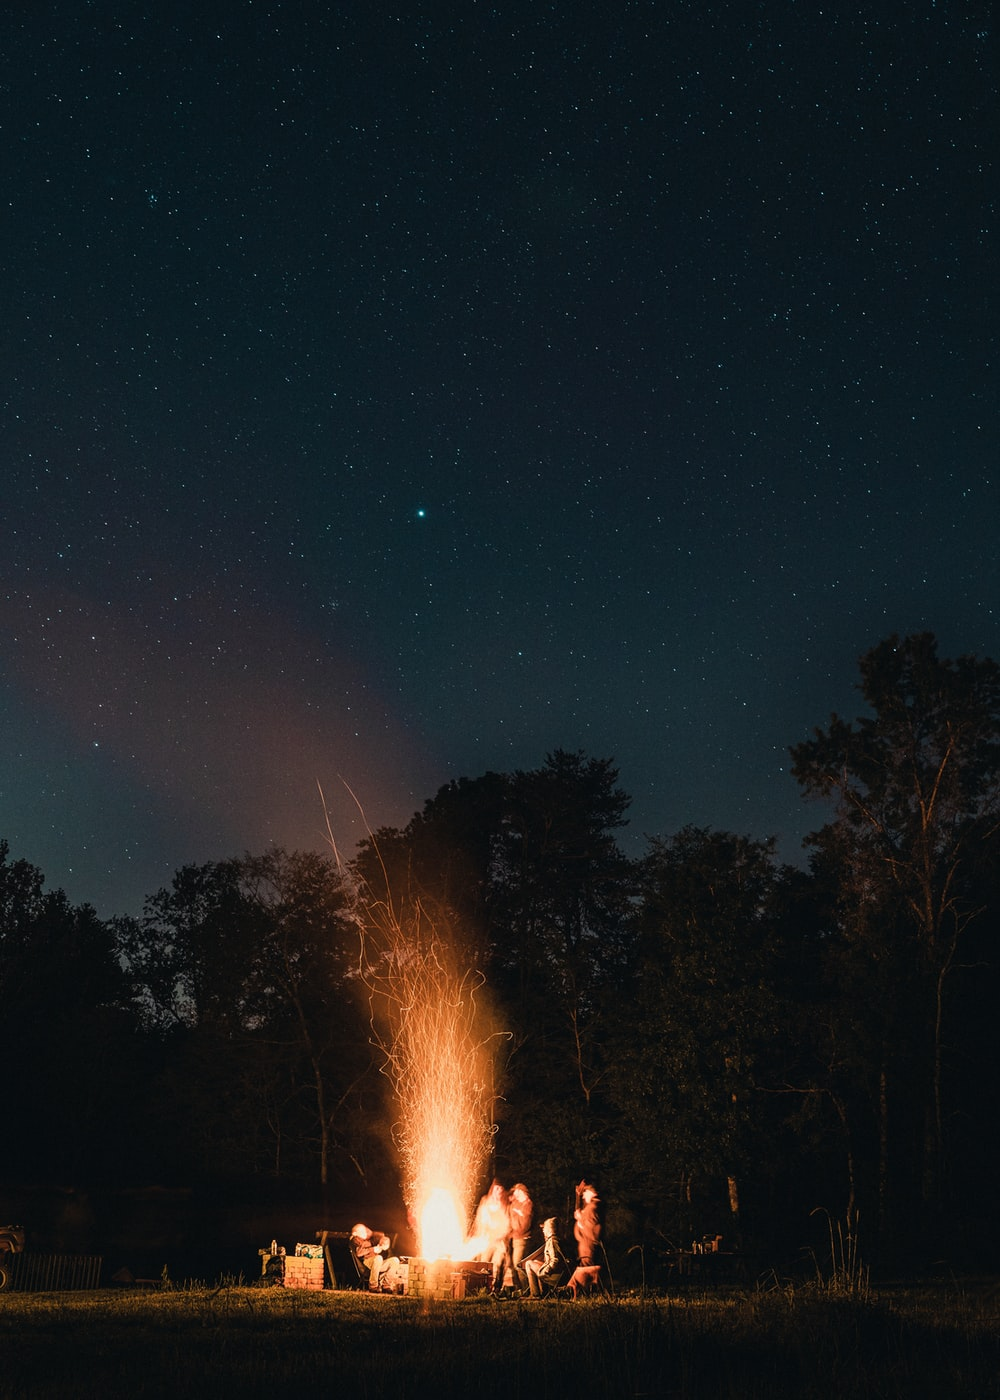 bonfire near trees during night time